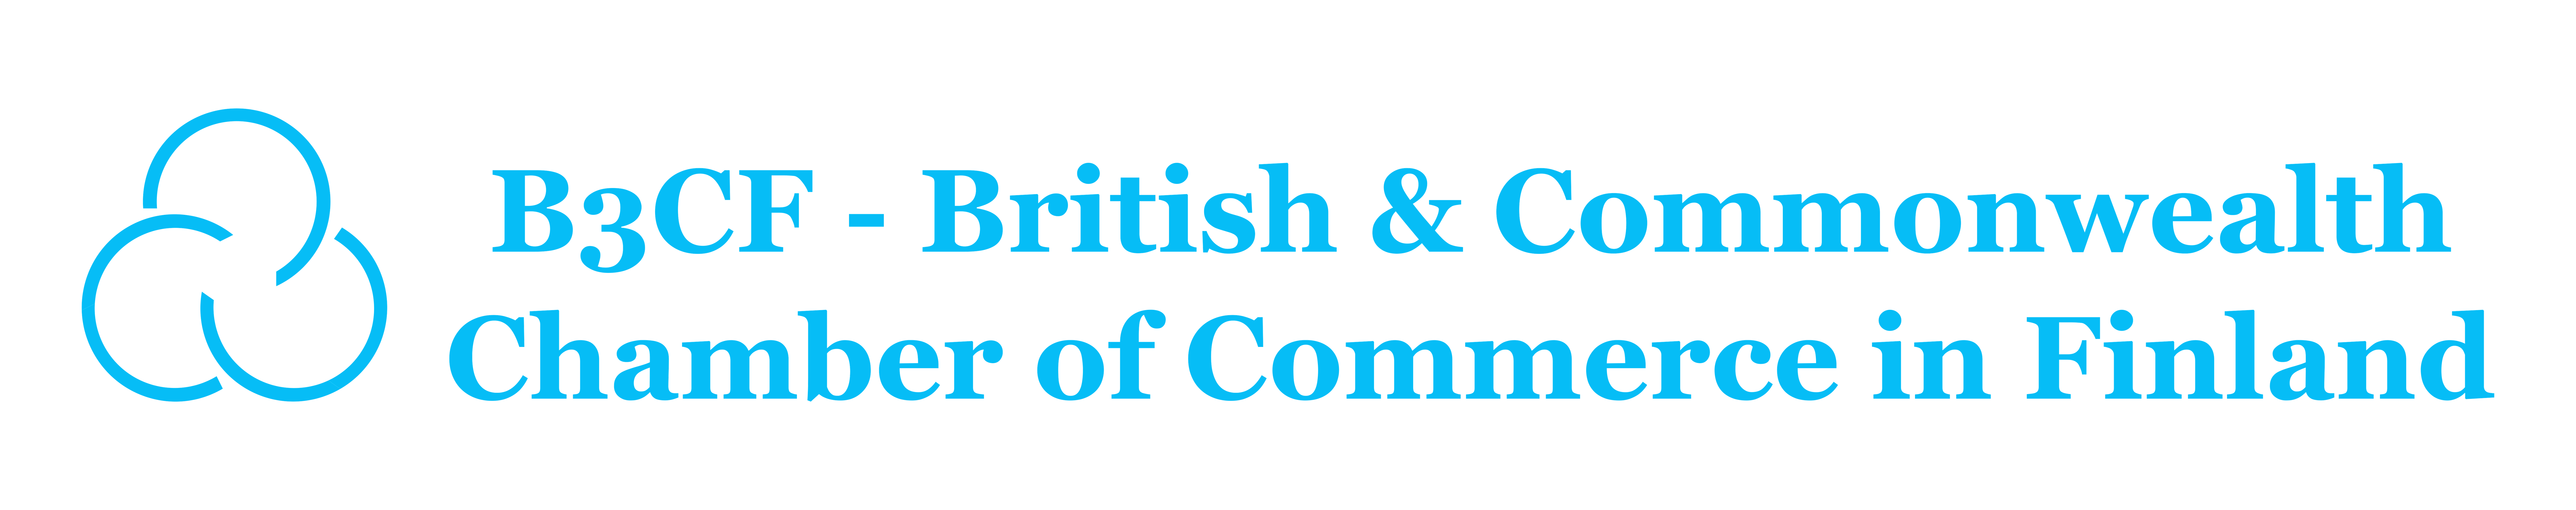 The British and Commonwealth Chamber of Commerce in Finland